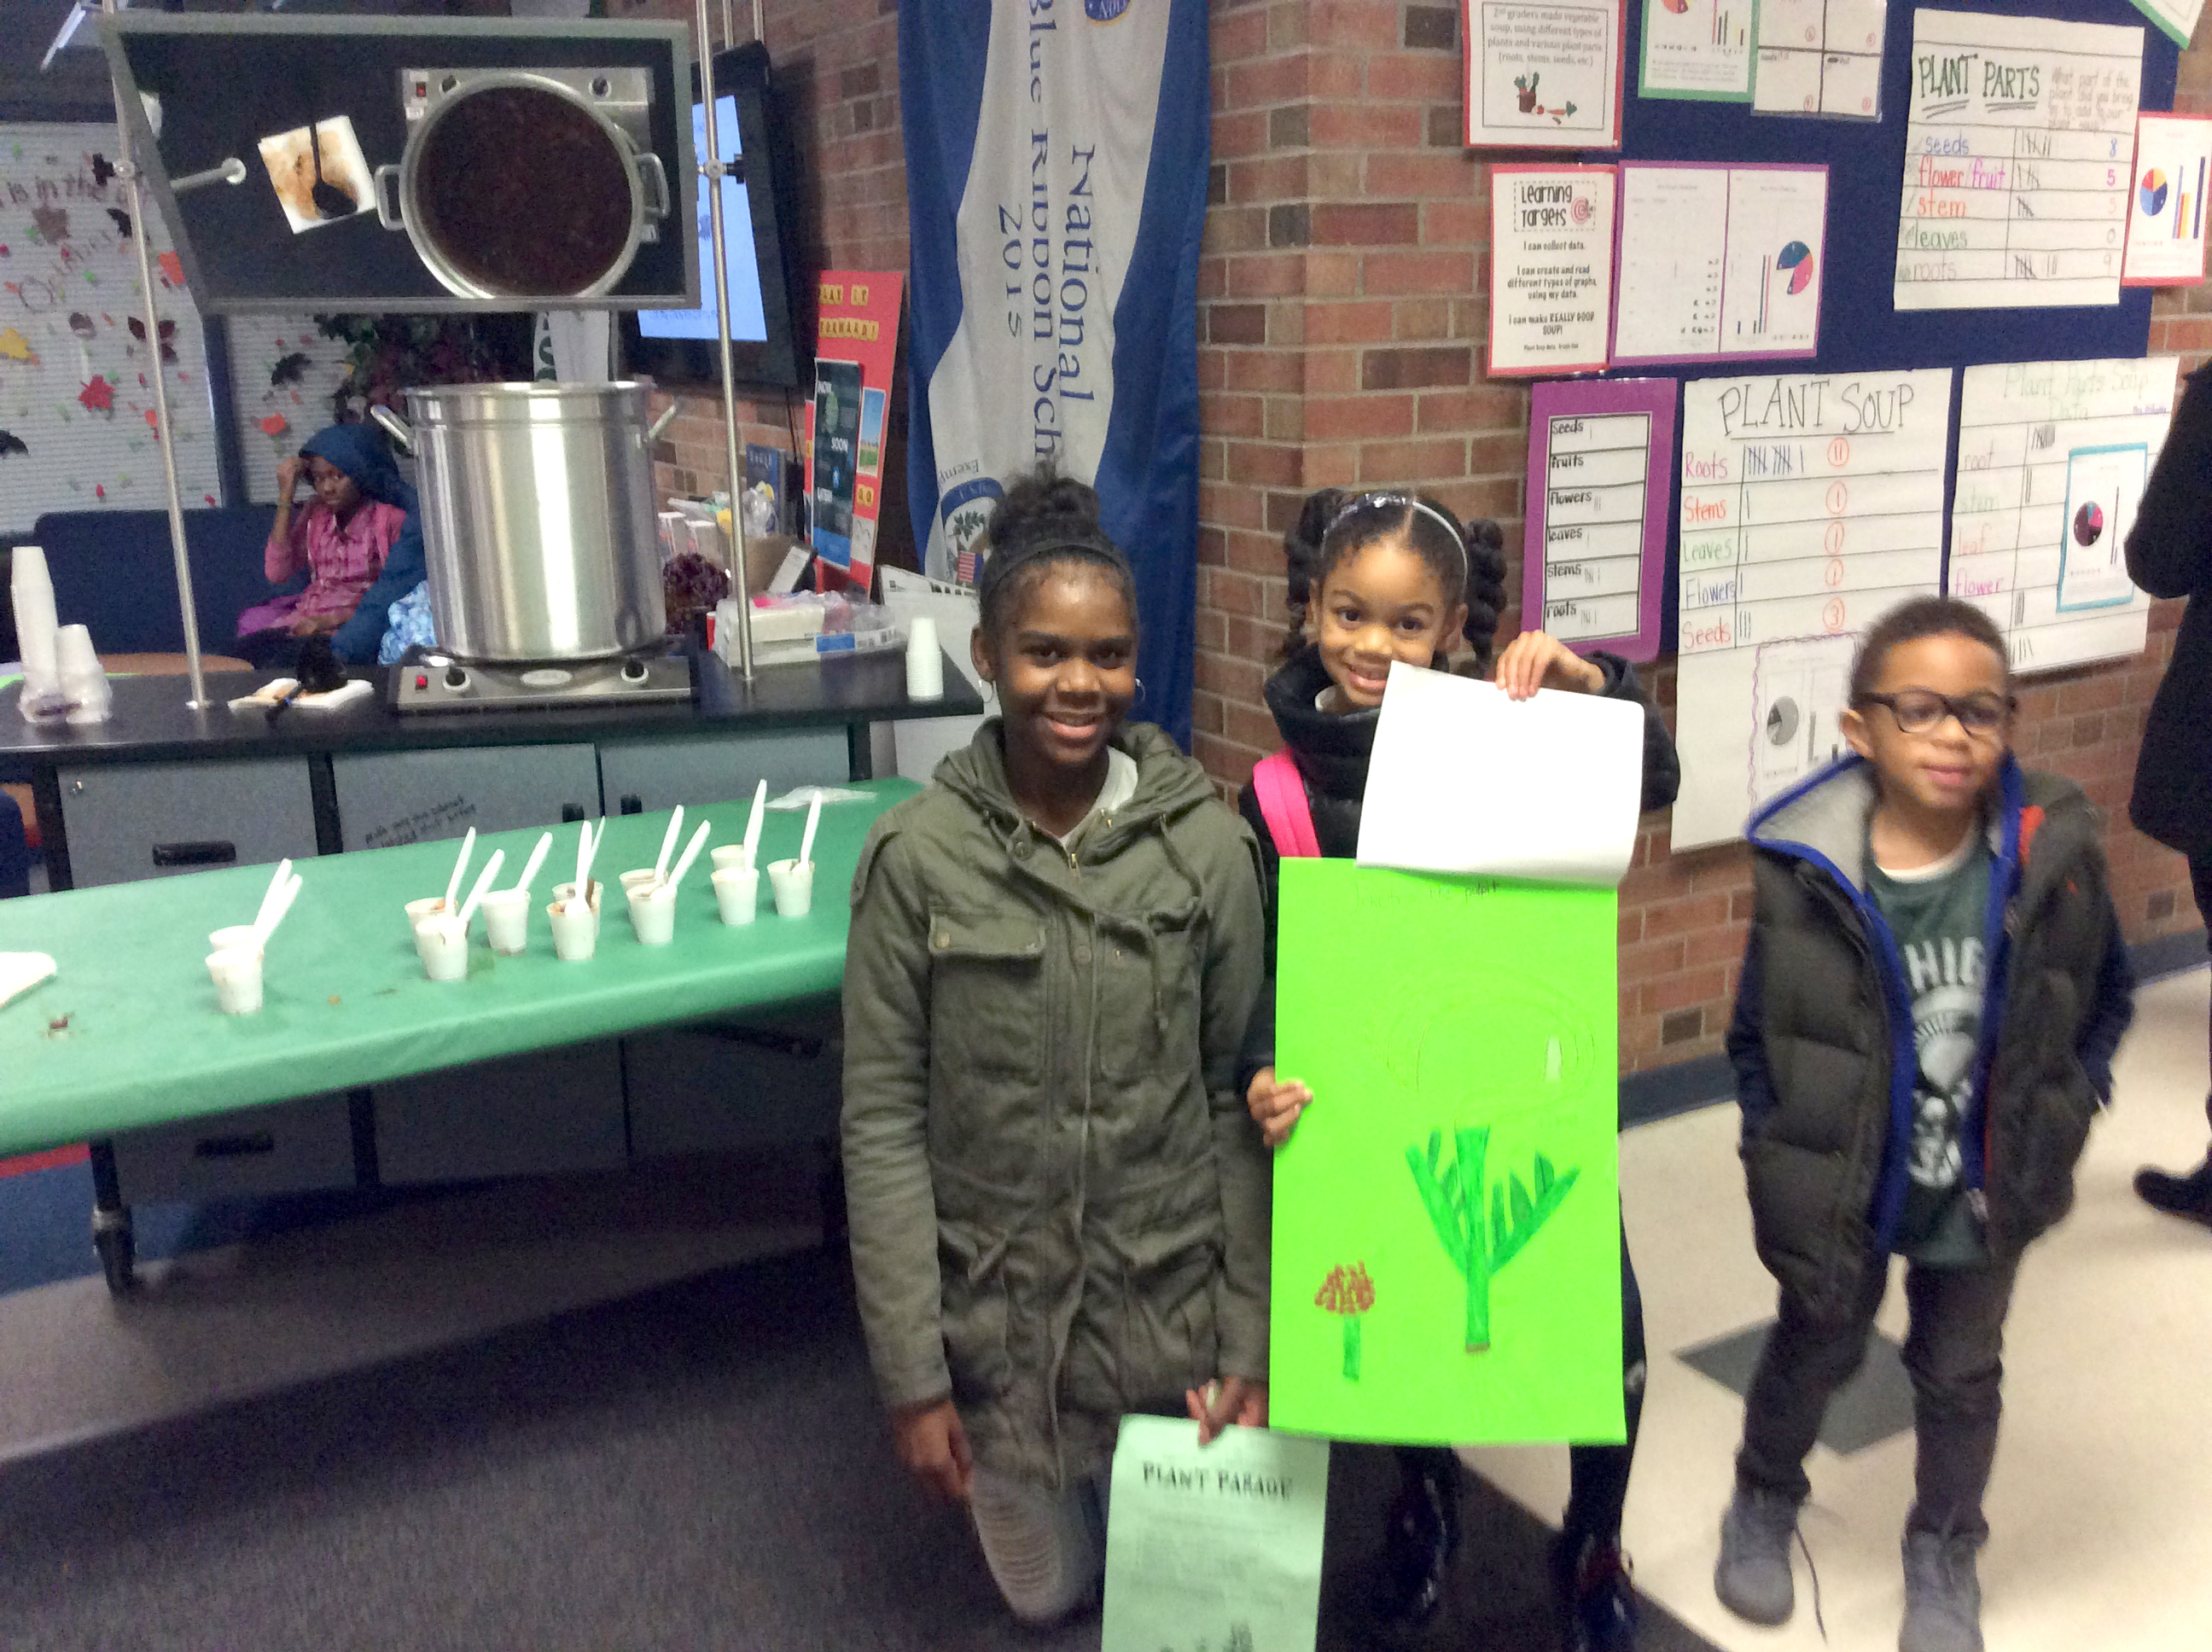 Students with plant grown project